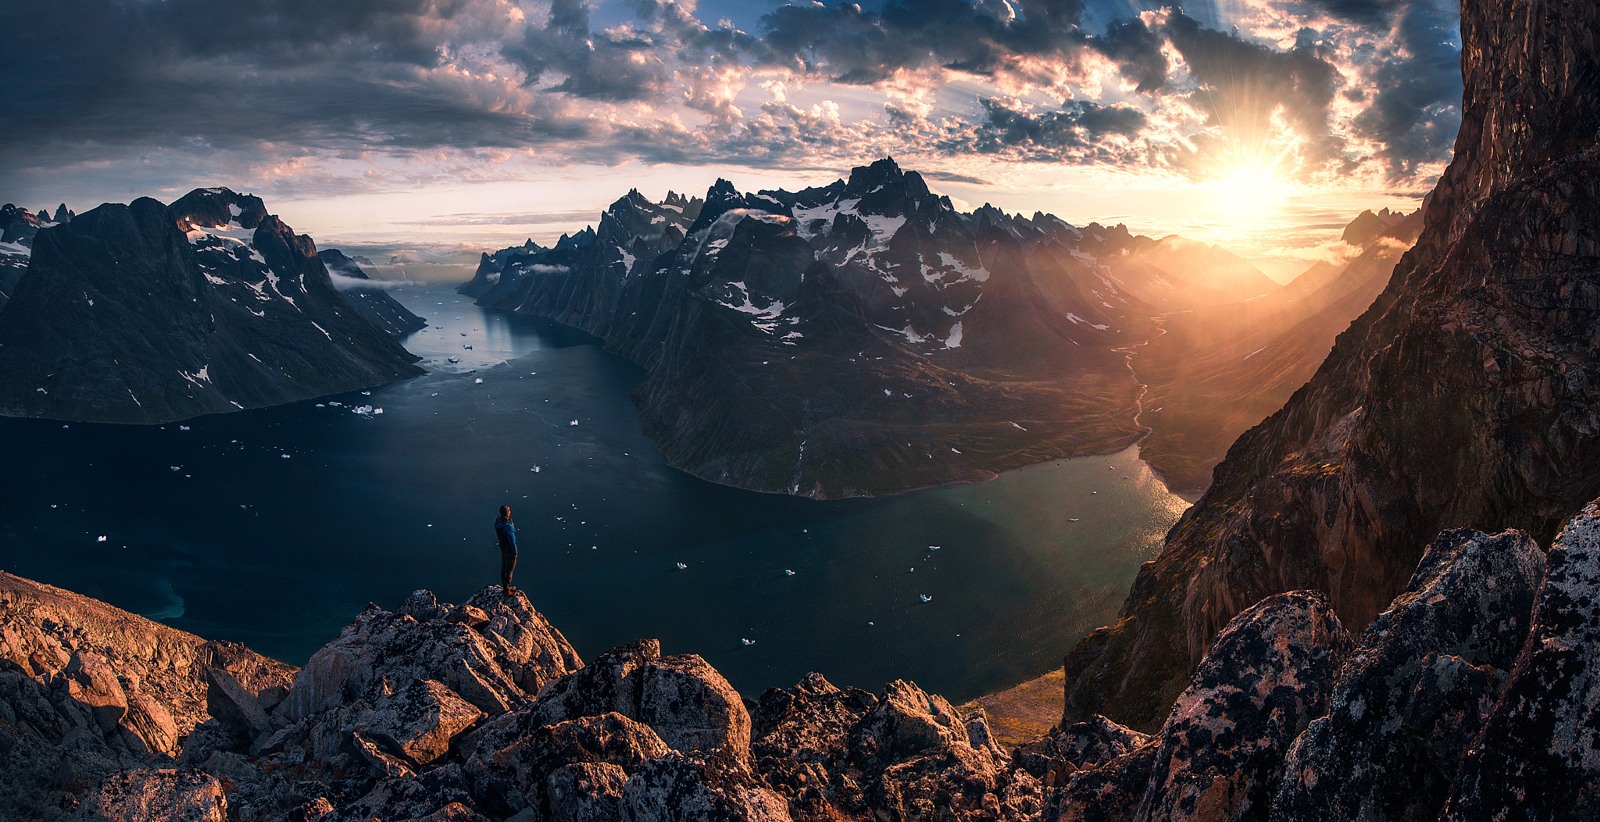 Best of 2015: Top 10 Landscape Photos